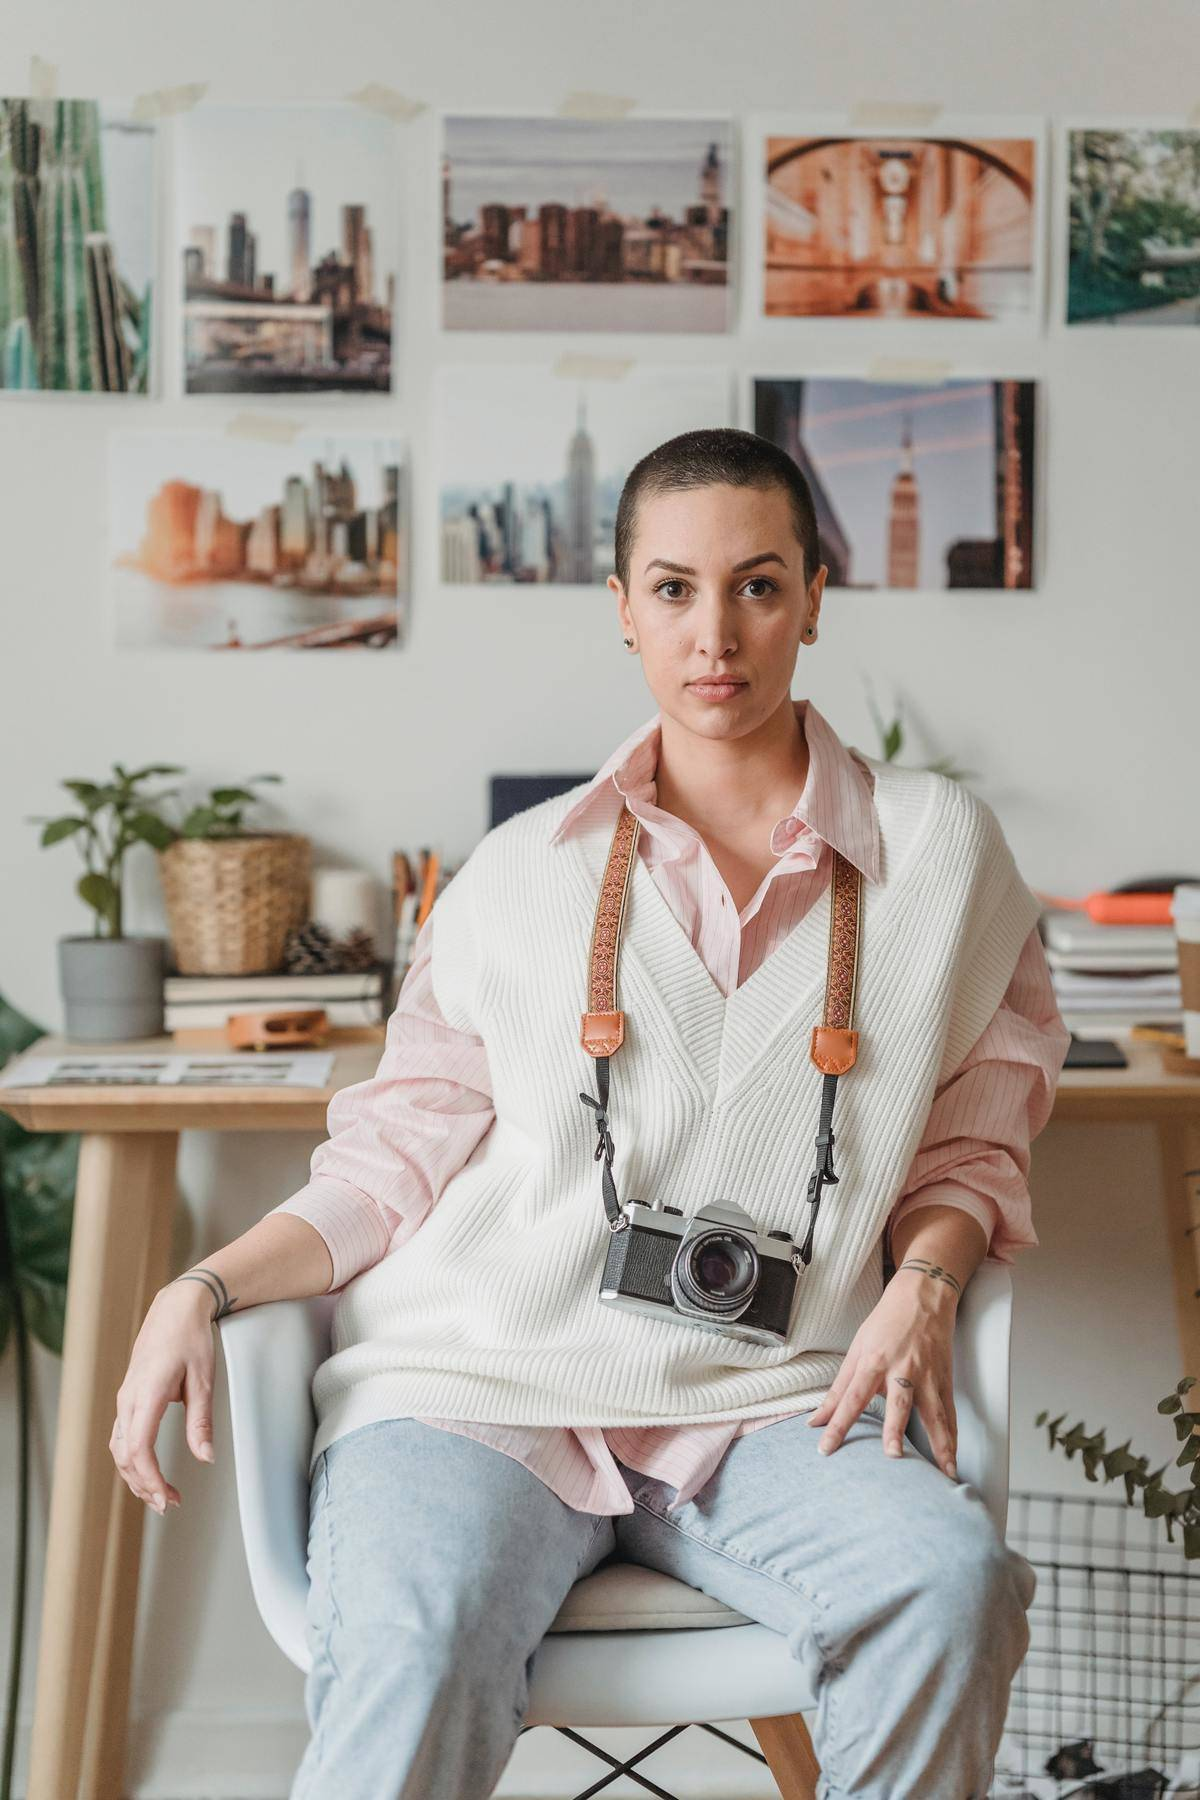 Woman sits alone with a camera around her neck